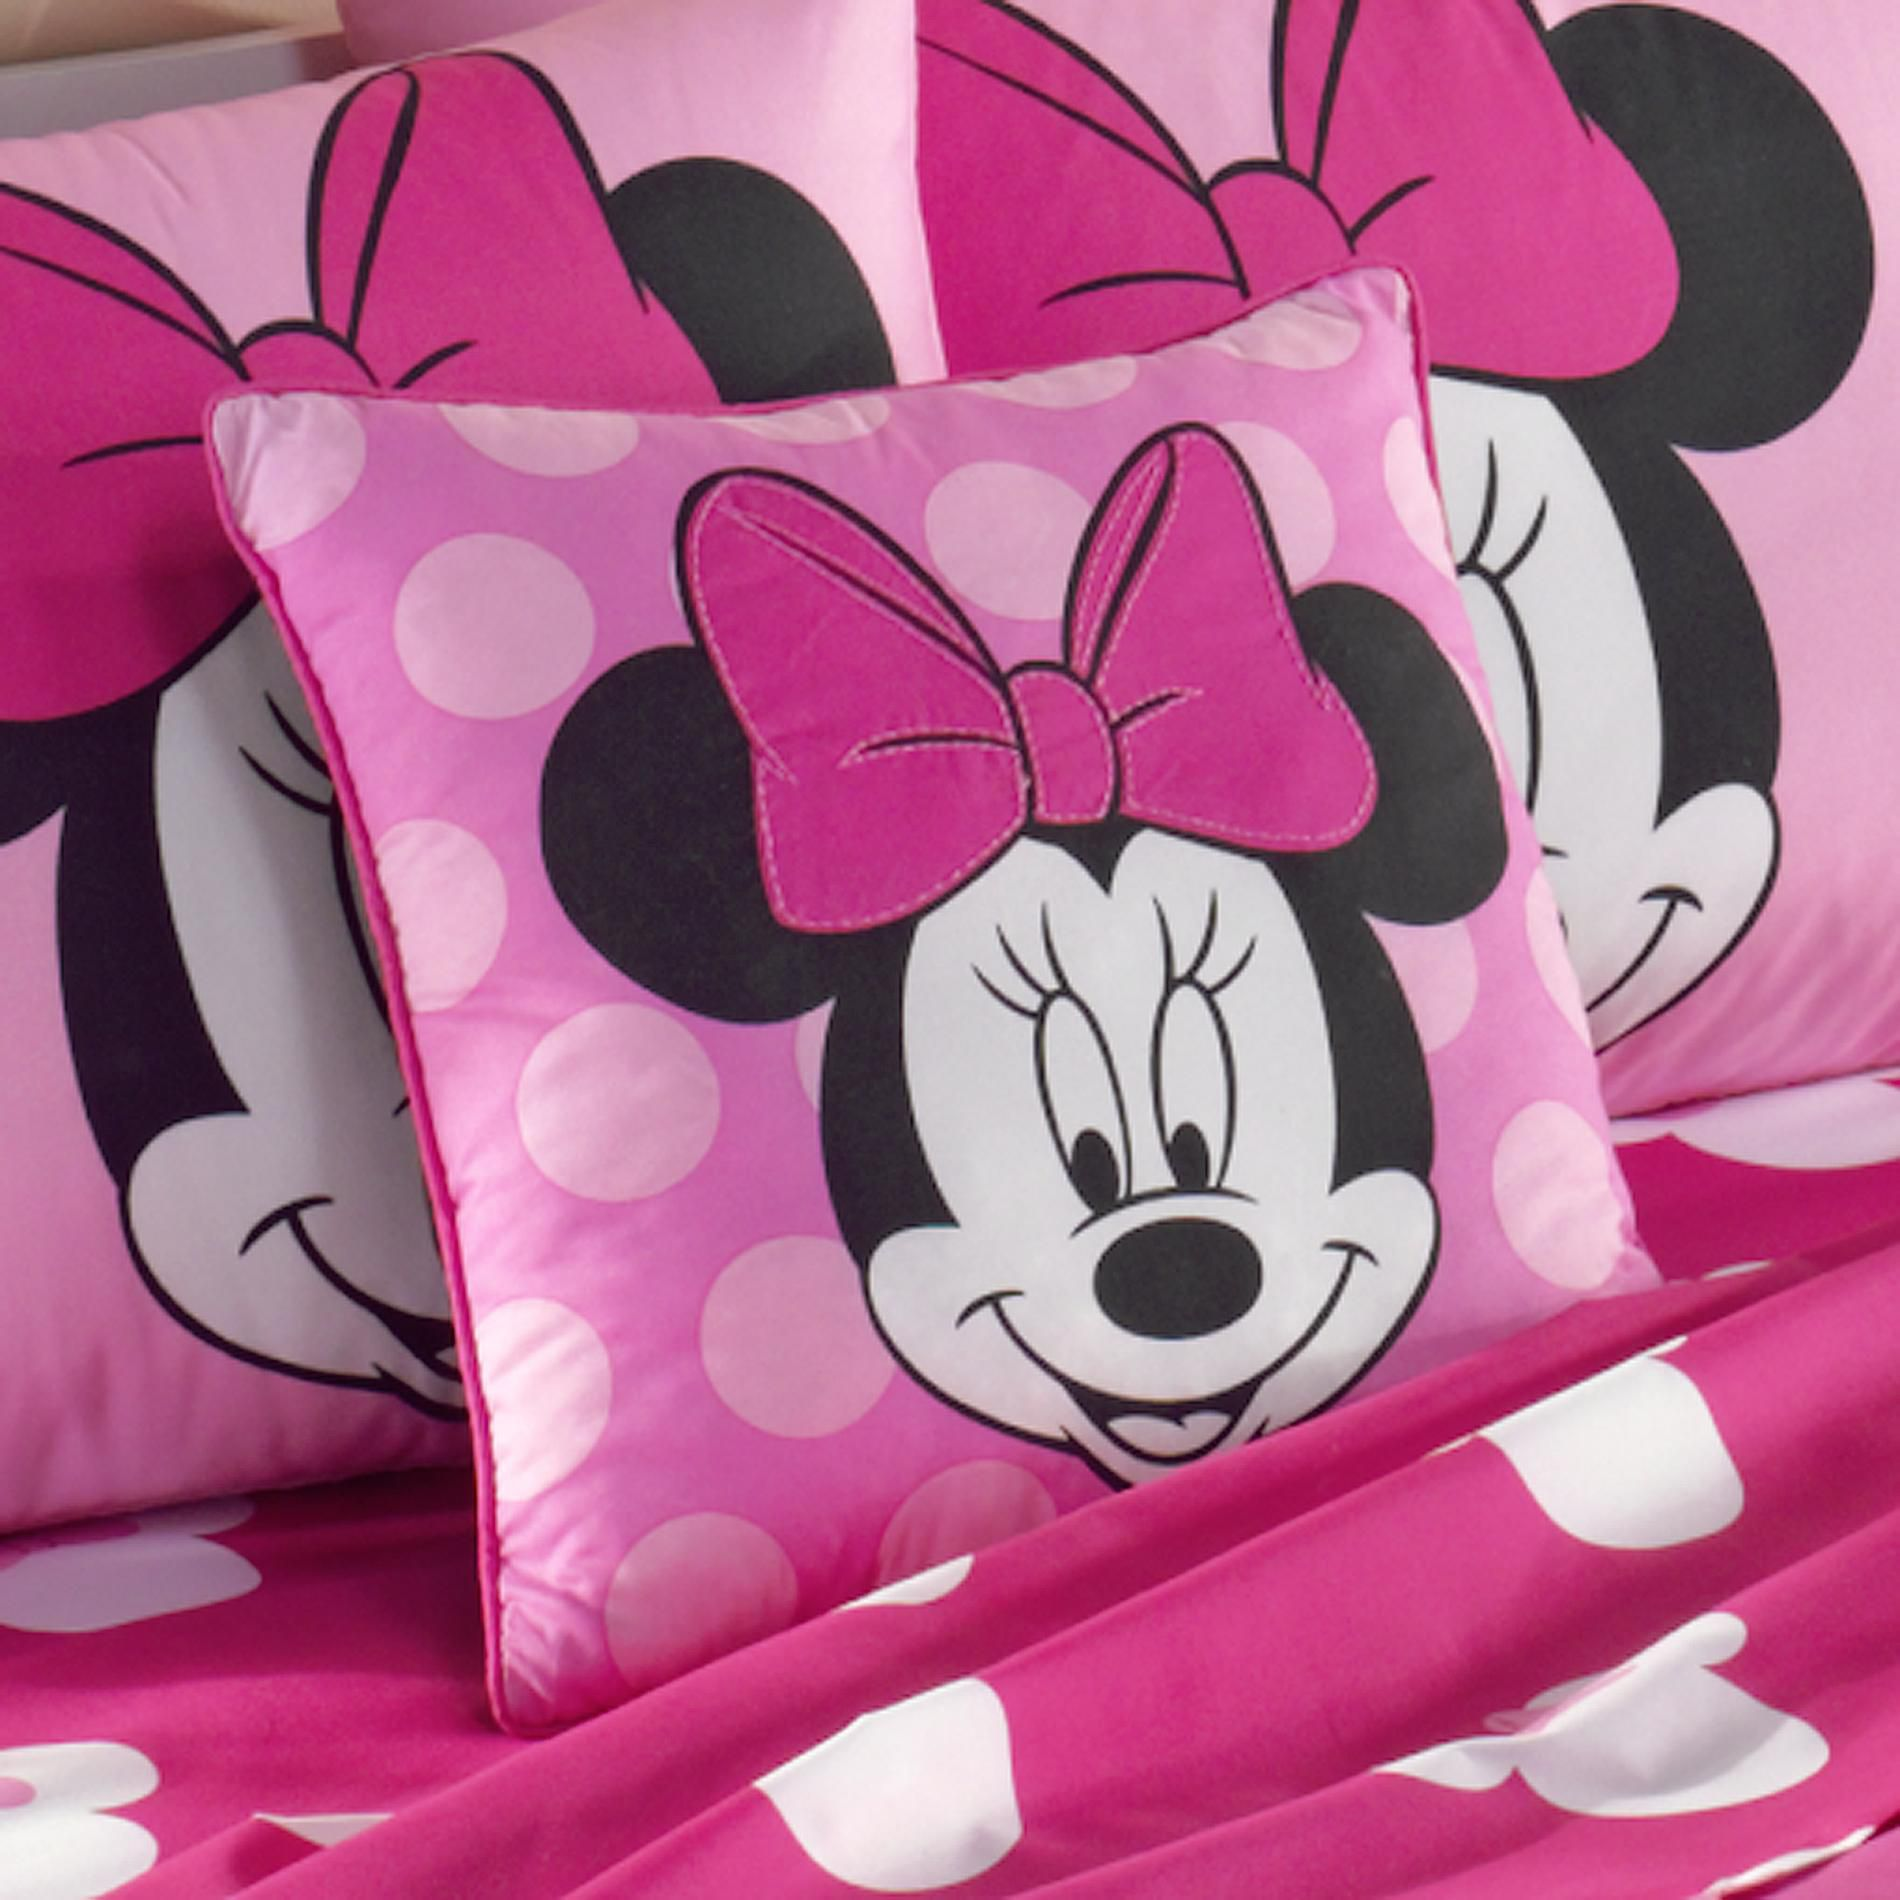 disney minnie mouse shaped decorative pillow for girls